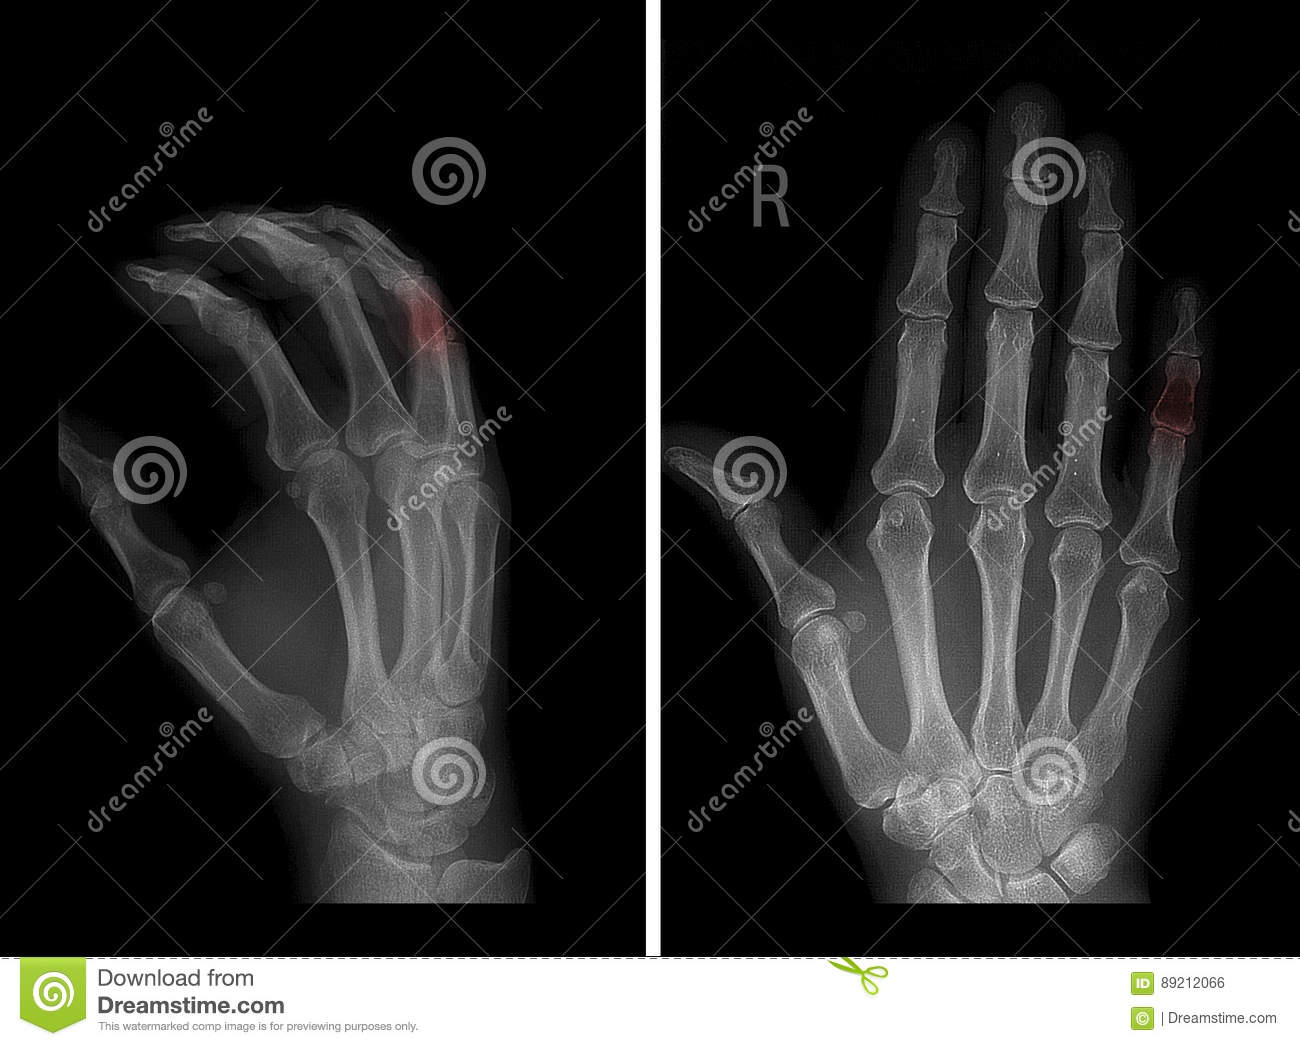 X-ray of the chondroma of the middle phalanx of the 5th finger of the left hand. Pathology in red marker